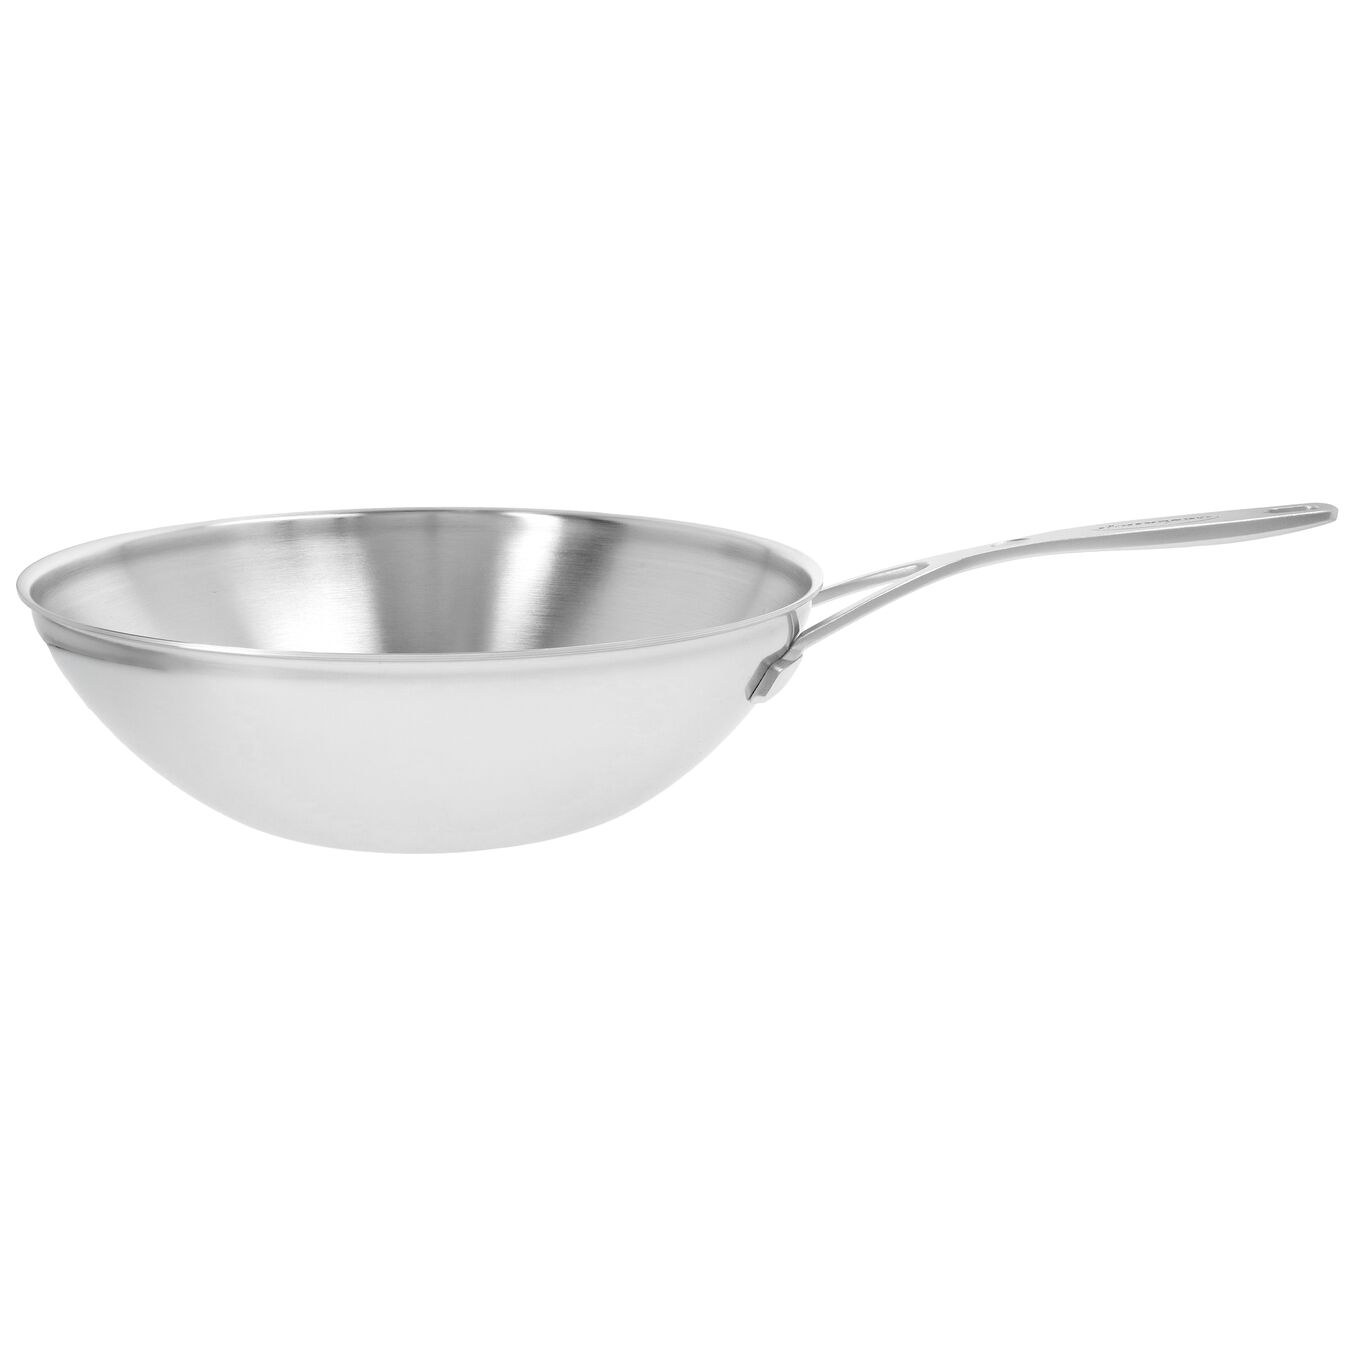 5 qt, 18/10 Stainless Steel, Flat Bottom Wok, silver,,large 1